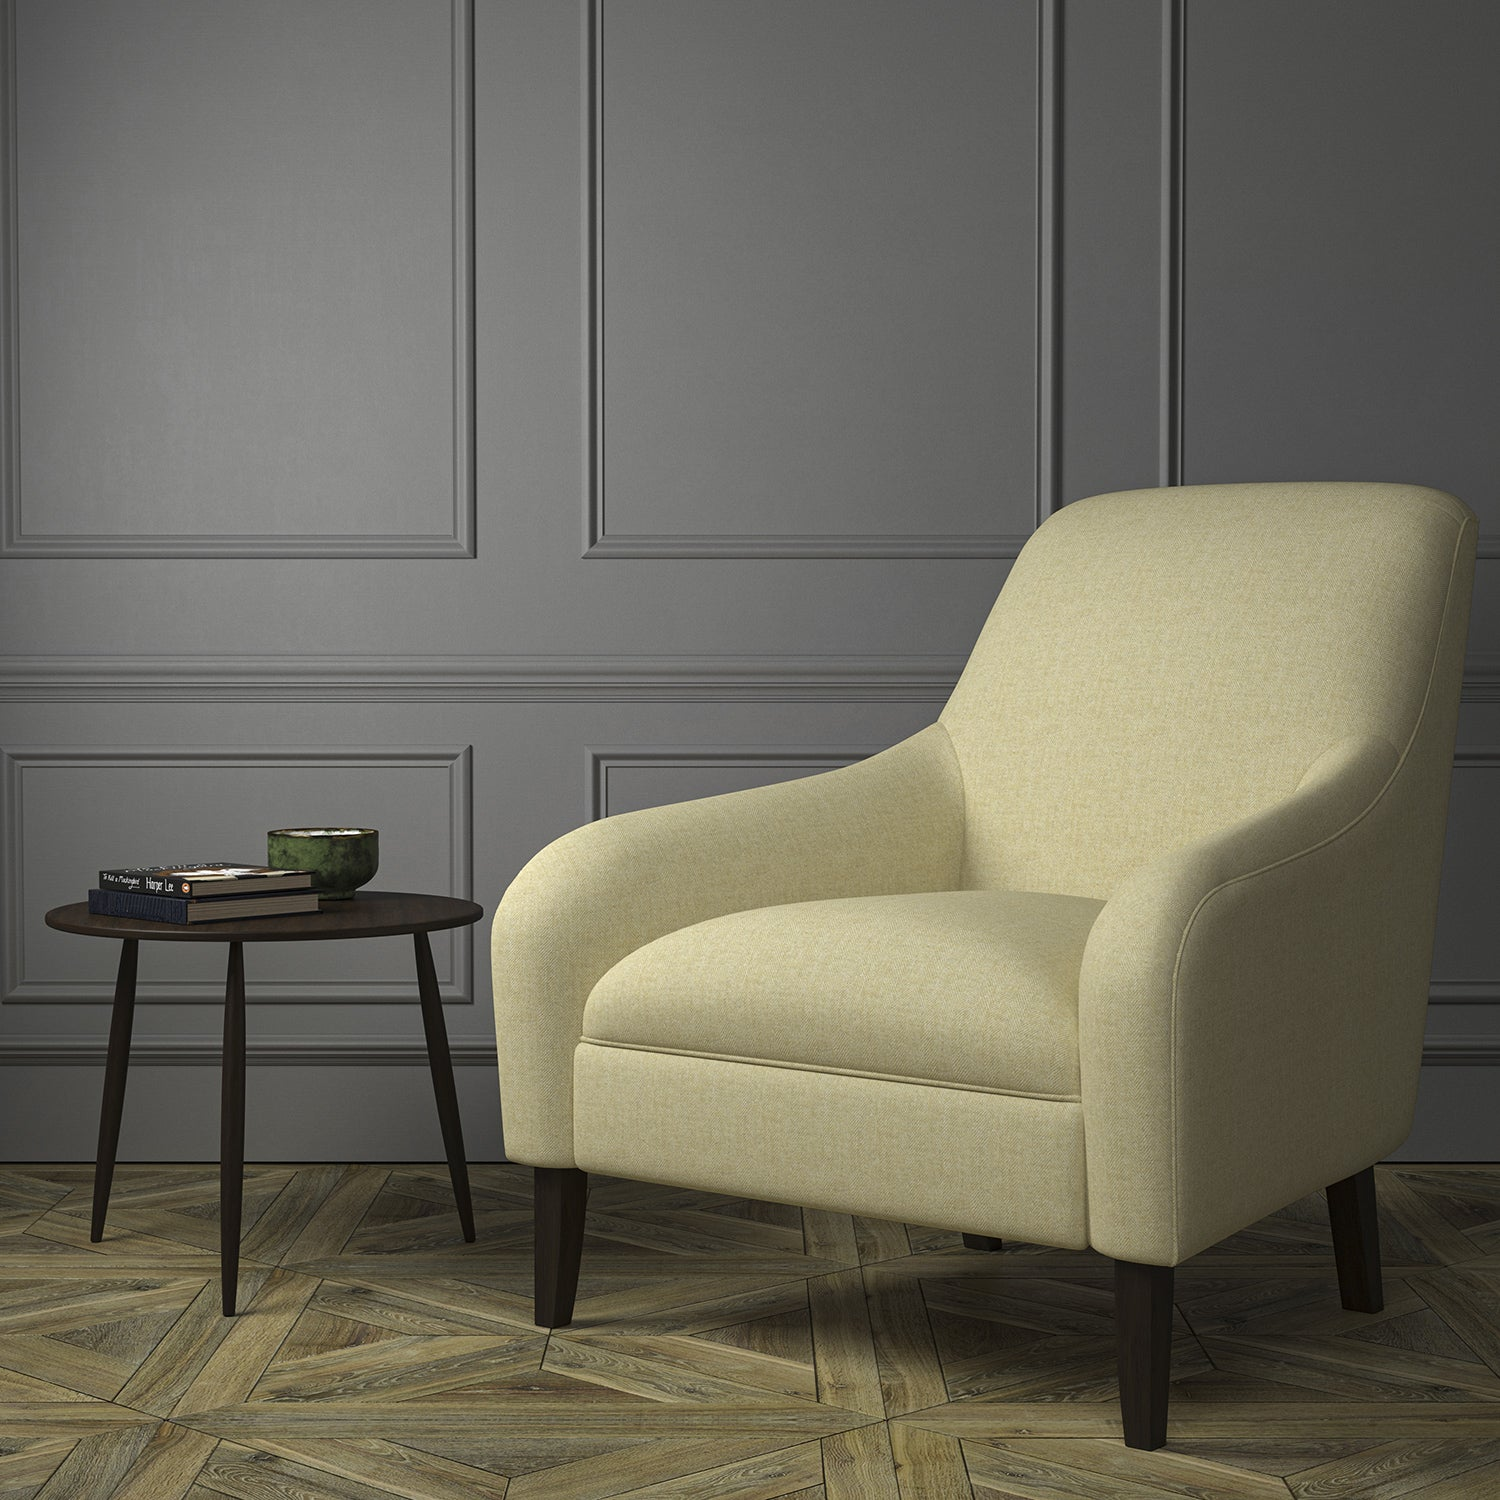 Chair upholstered in a luxury Scottish beige wool herringbone upholstery fabric